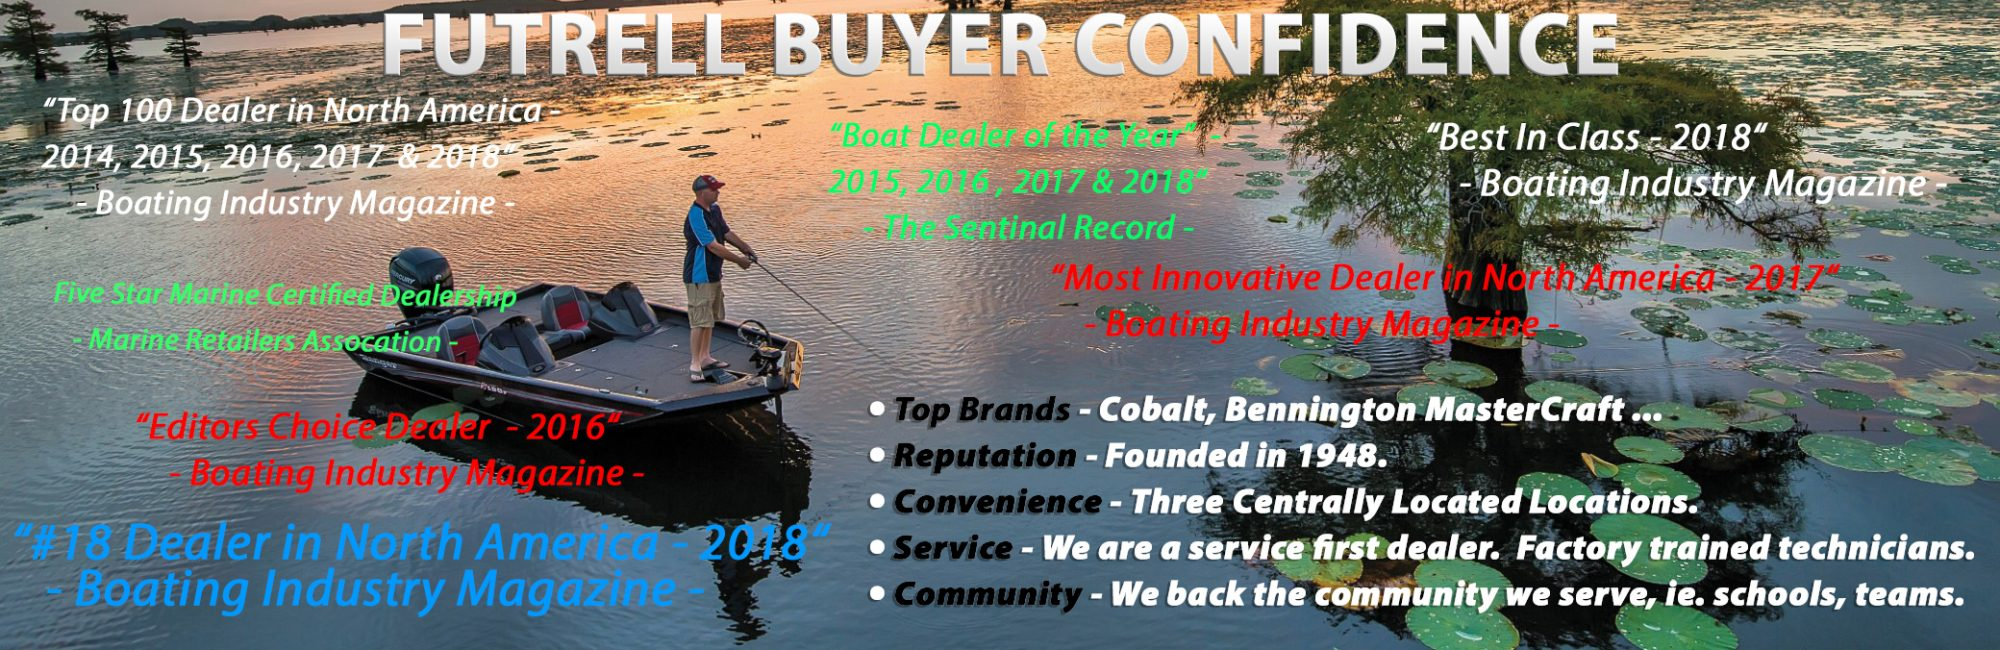 Futrell Buyer Confidence - top brands; reputation, convenience, service, community; top 100 dealer; best in class; boat dealer of the year; editors choice dealer